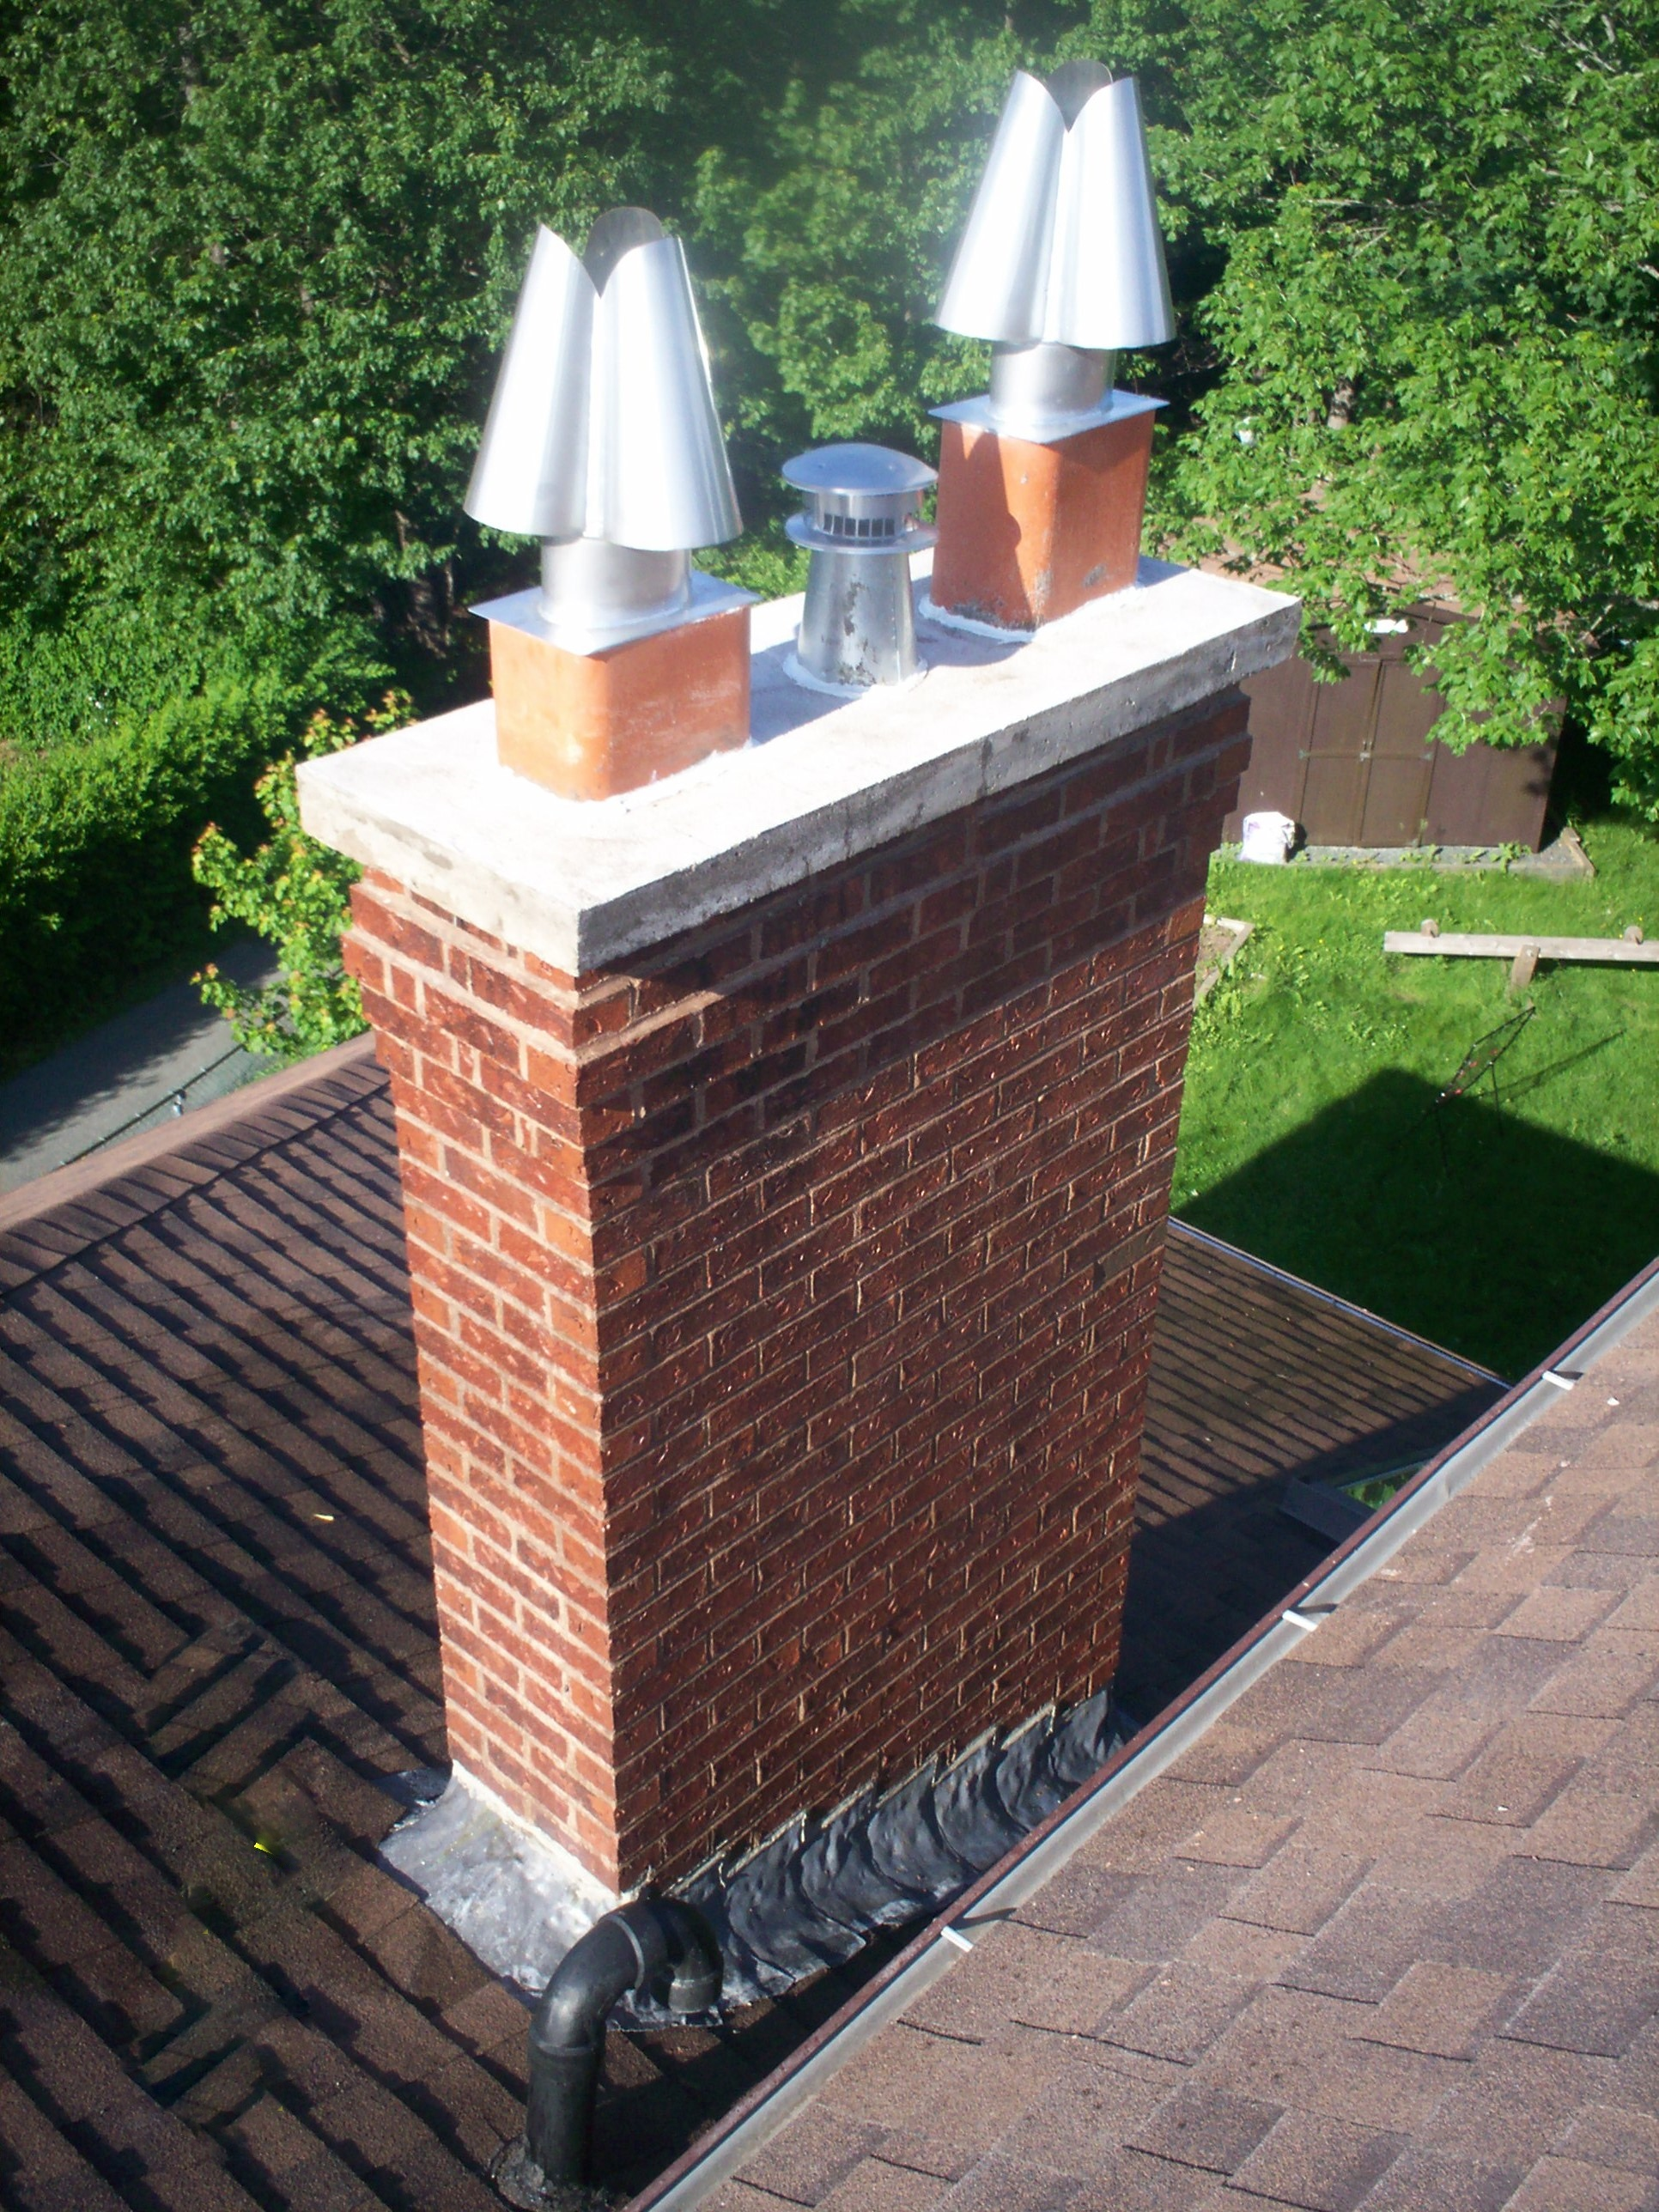 image of chimney-chimney repair services completed in Halifax-Dartmouth Regional Municipality, NS by Pro Chimney Services based in Halifax, NS servicing all of the Halifax-Dartmouth Regional Municipality, Bedford, Sackville, Mount Uniacke, Windsor, Hantsport , Wolfville, Kentville, Chester, Mahone Bay, Lunenburg, Bridgewater, Liverpool, Fall River, Wellington, Enfield, Elmsdale, Brookfield, Truro, Musquodoboit Harbour & surrounding areas.